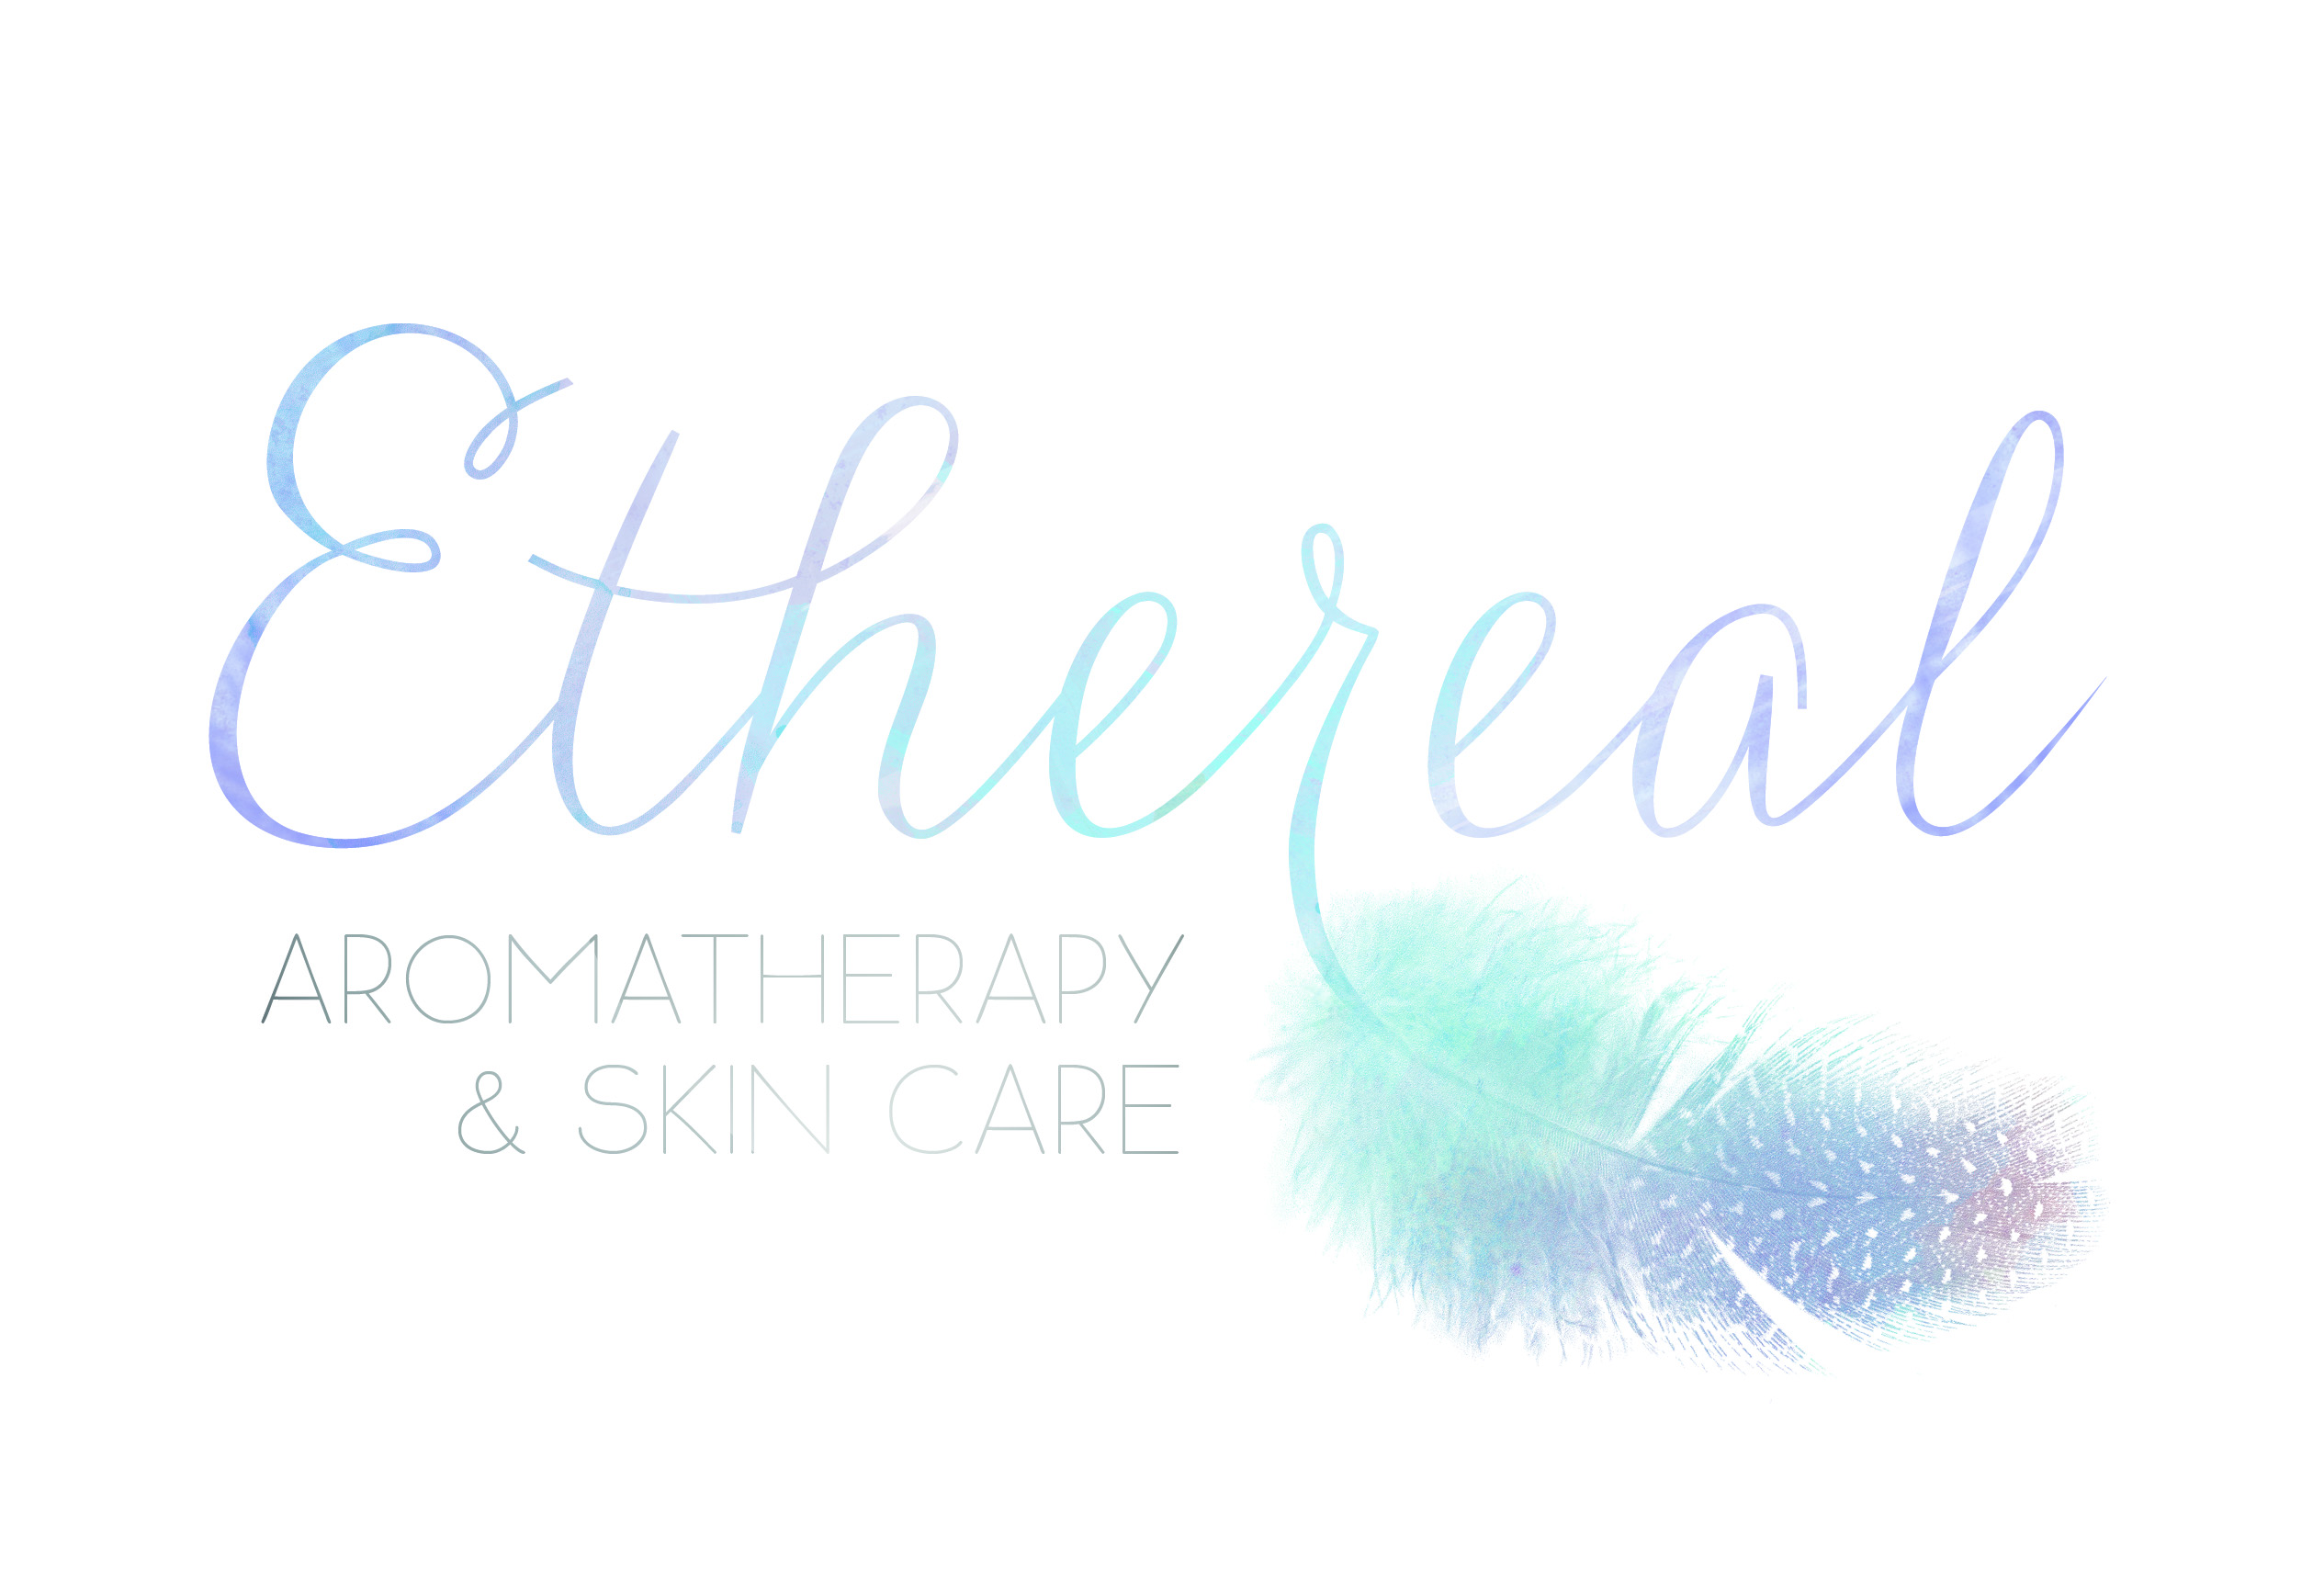 Ethereal Natural Skin Care Education